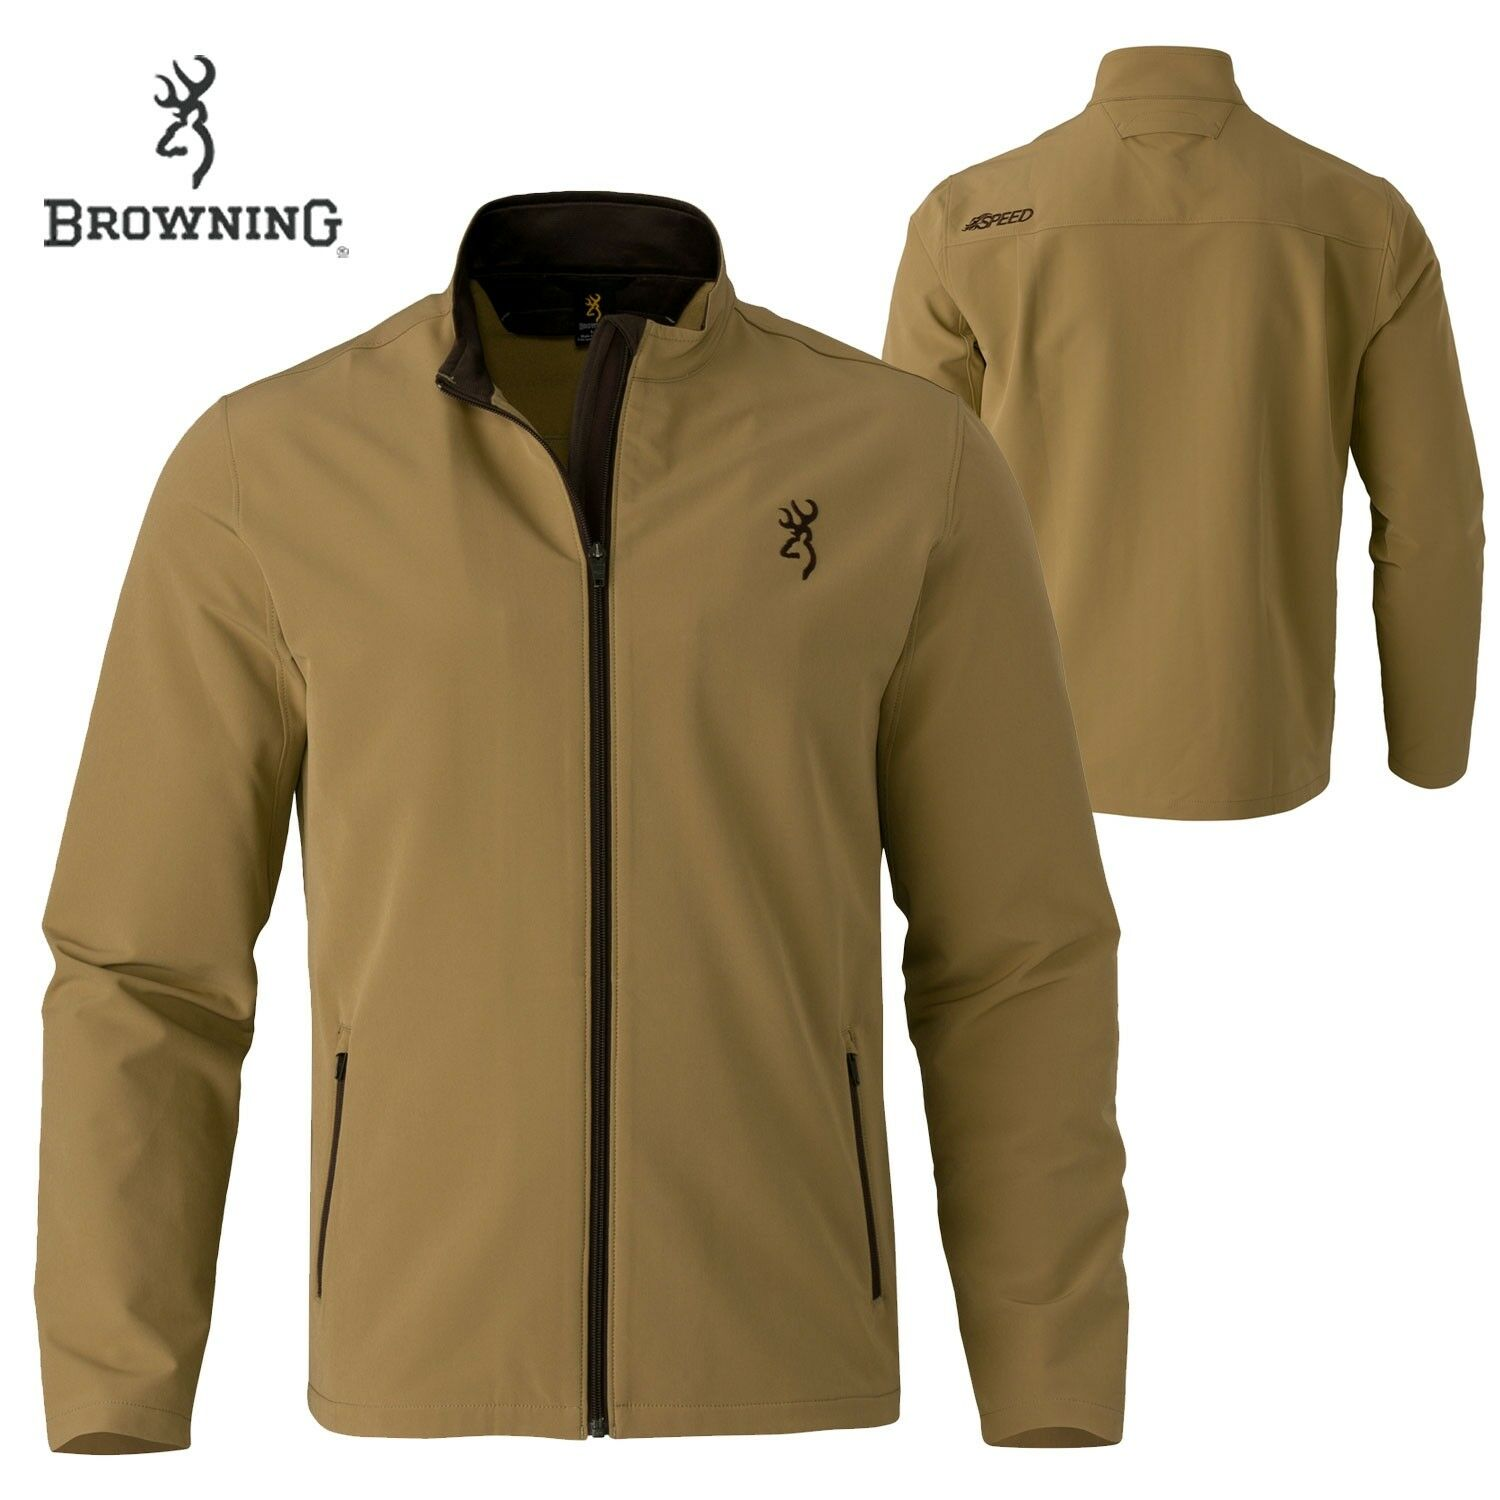 Browning Hell's Canyon Speed Javelin Jkt (M)- TAN